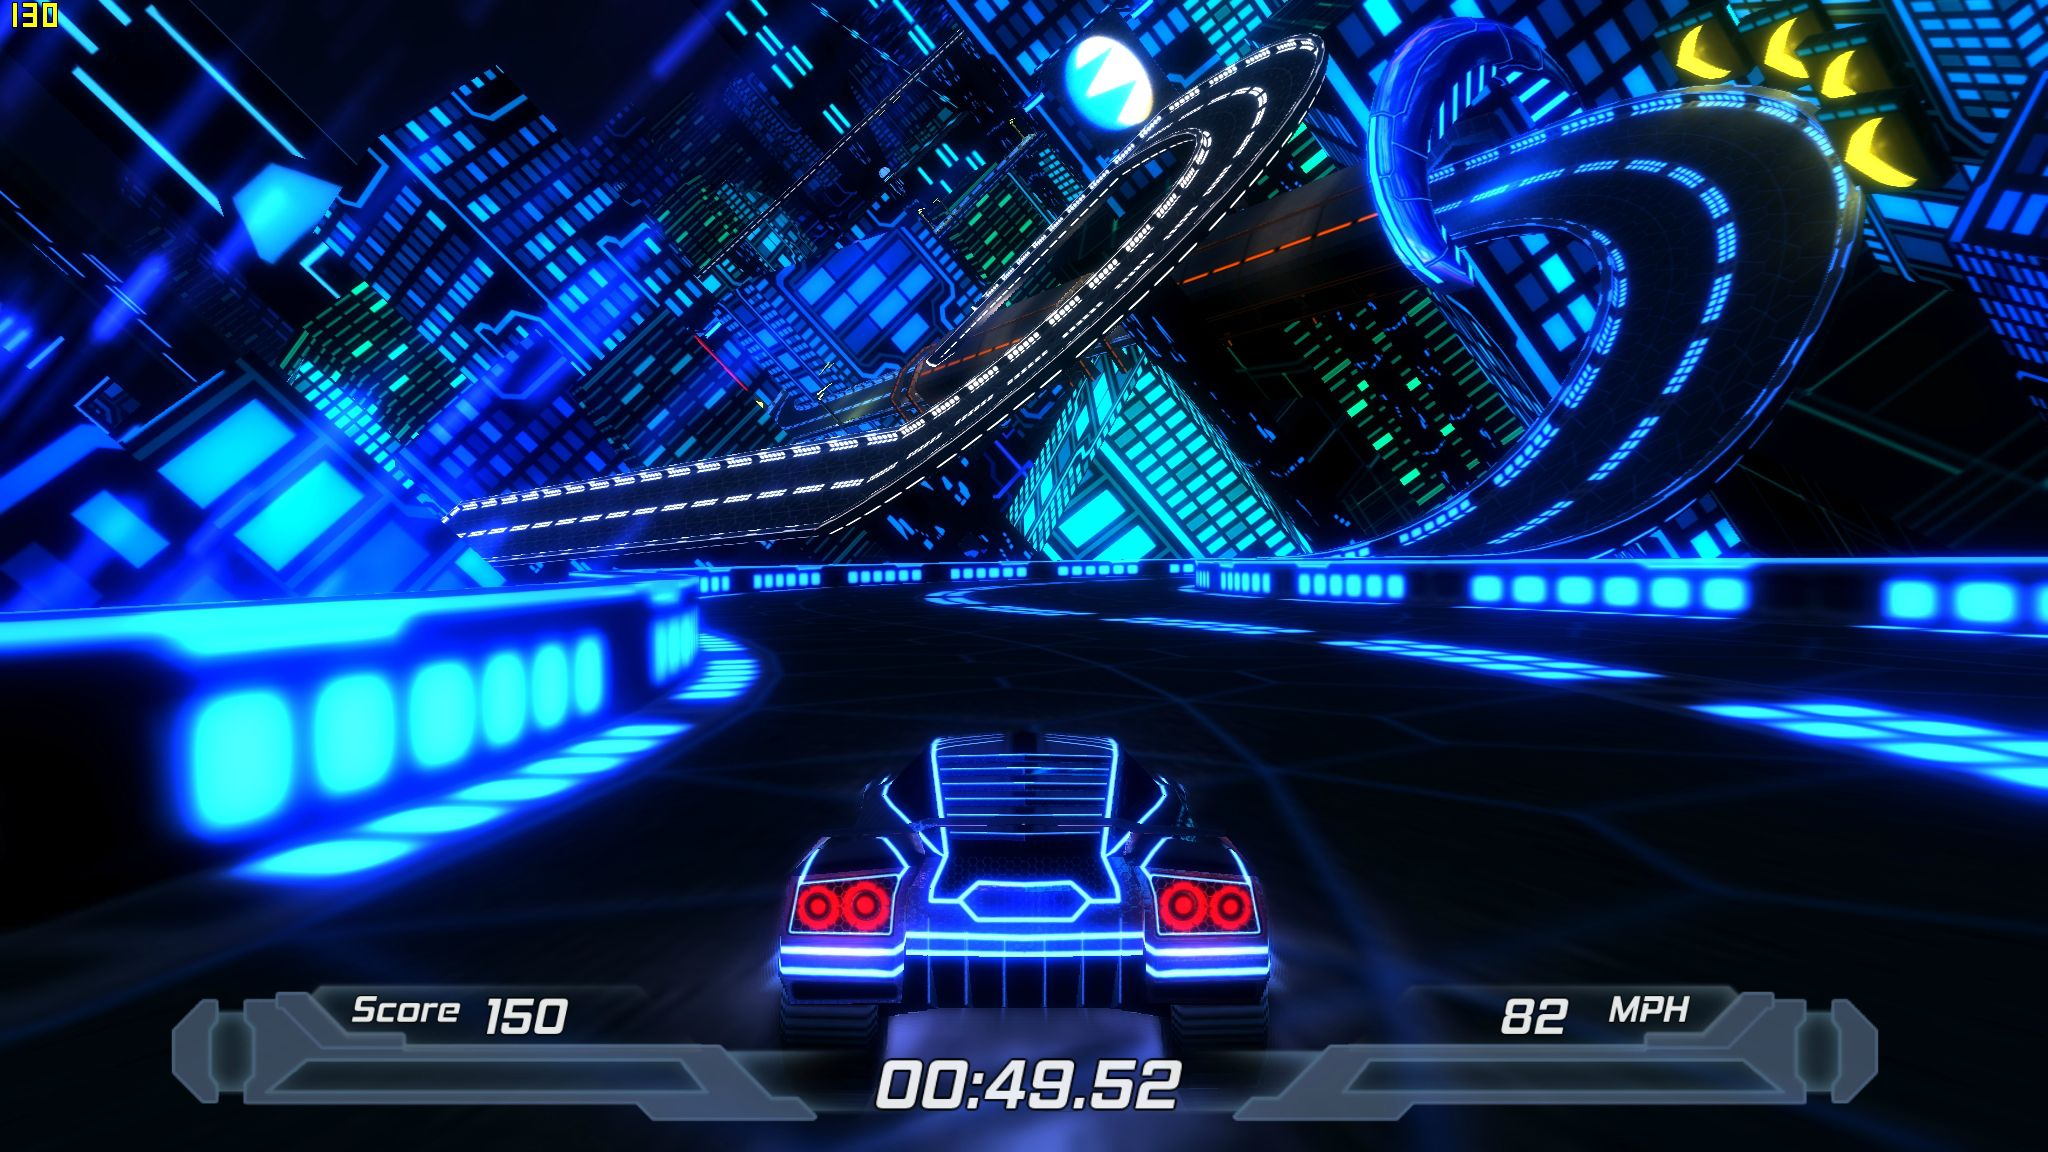 Nitronic Rush   Free Full PC Game   Hot UK Deals HD Wallpaper